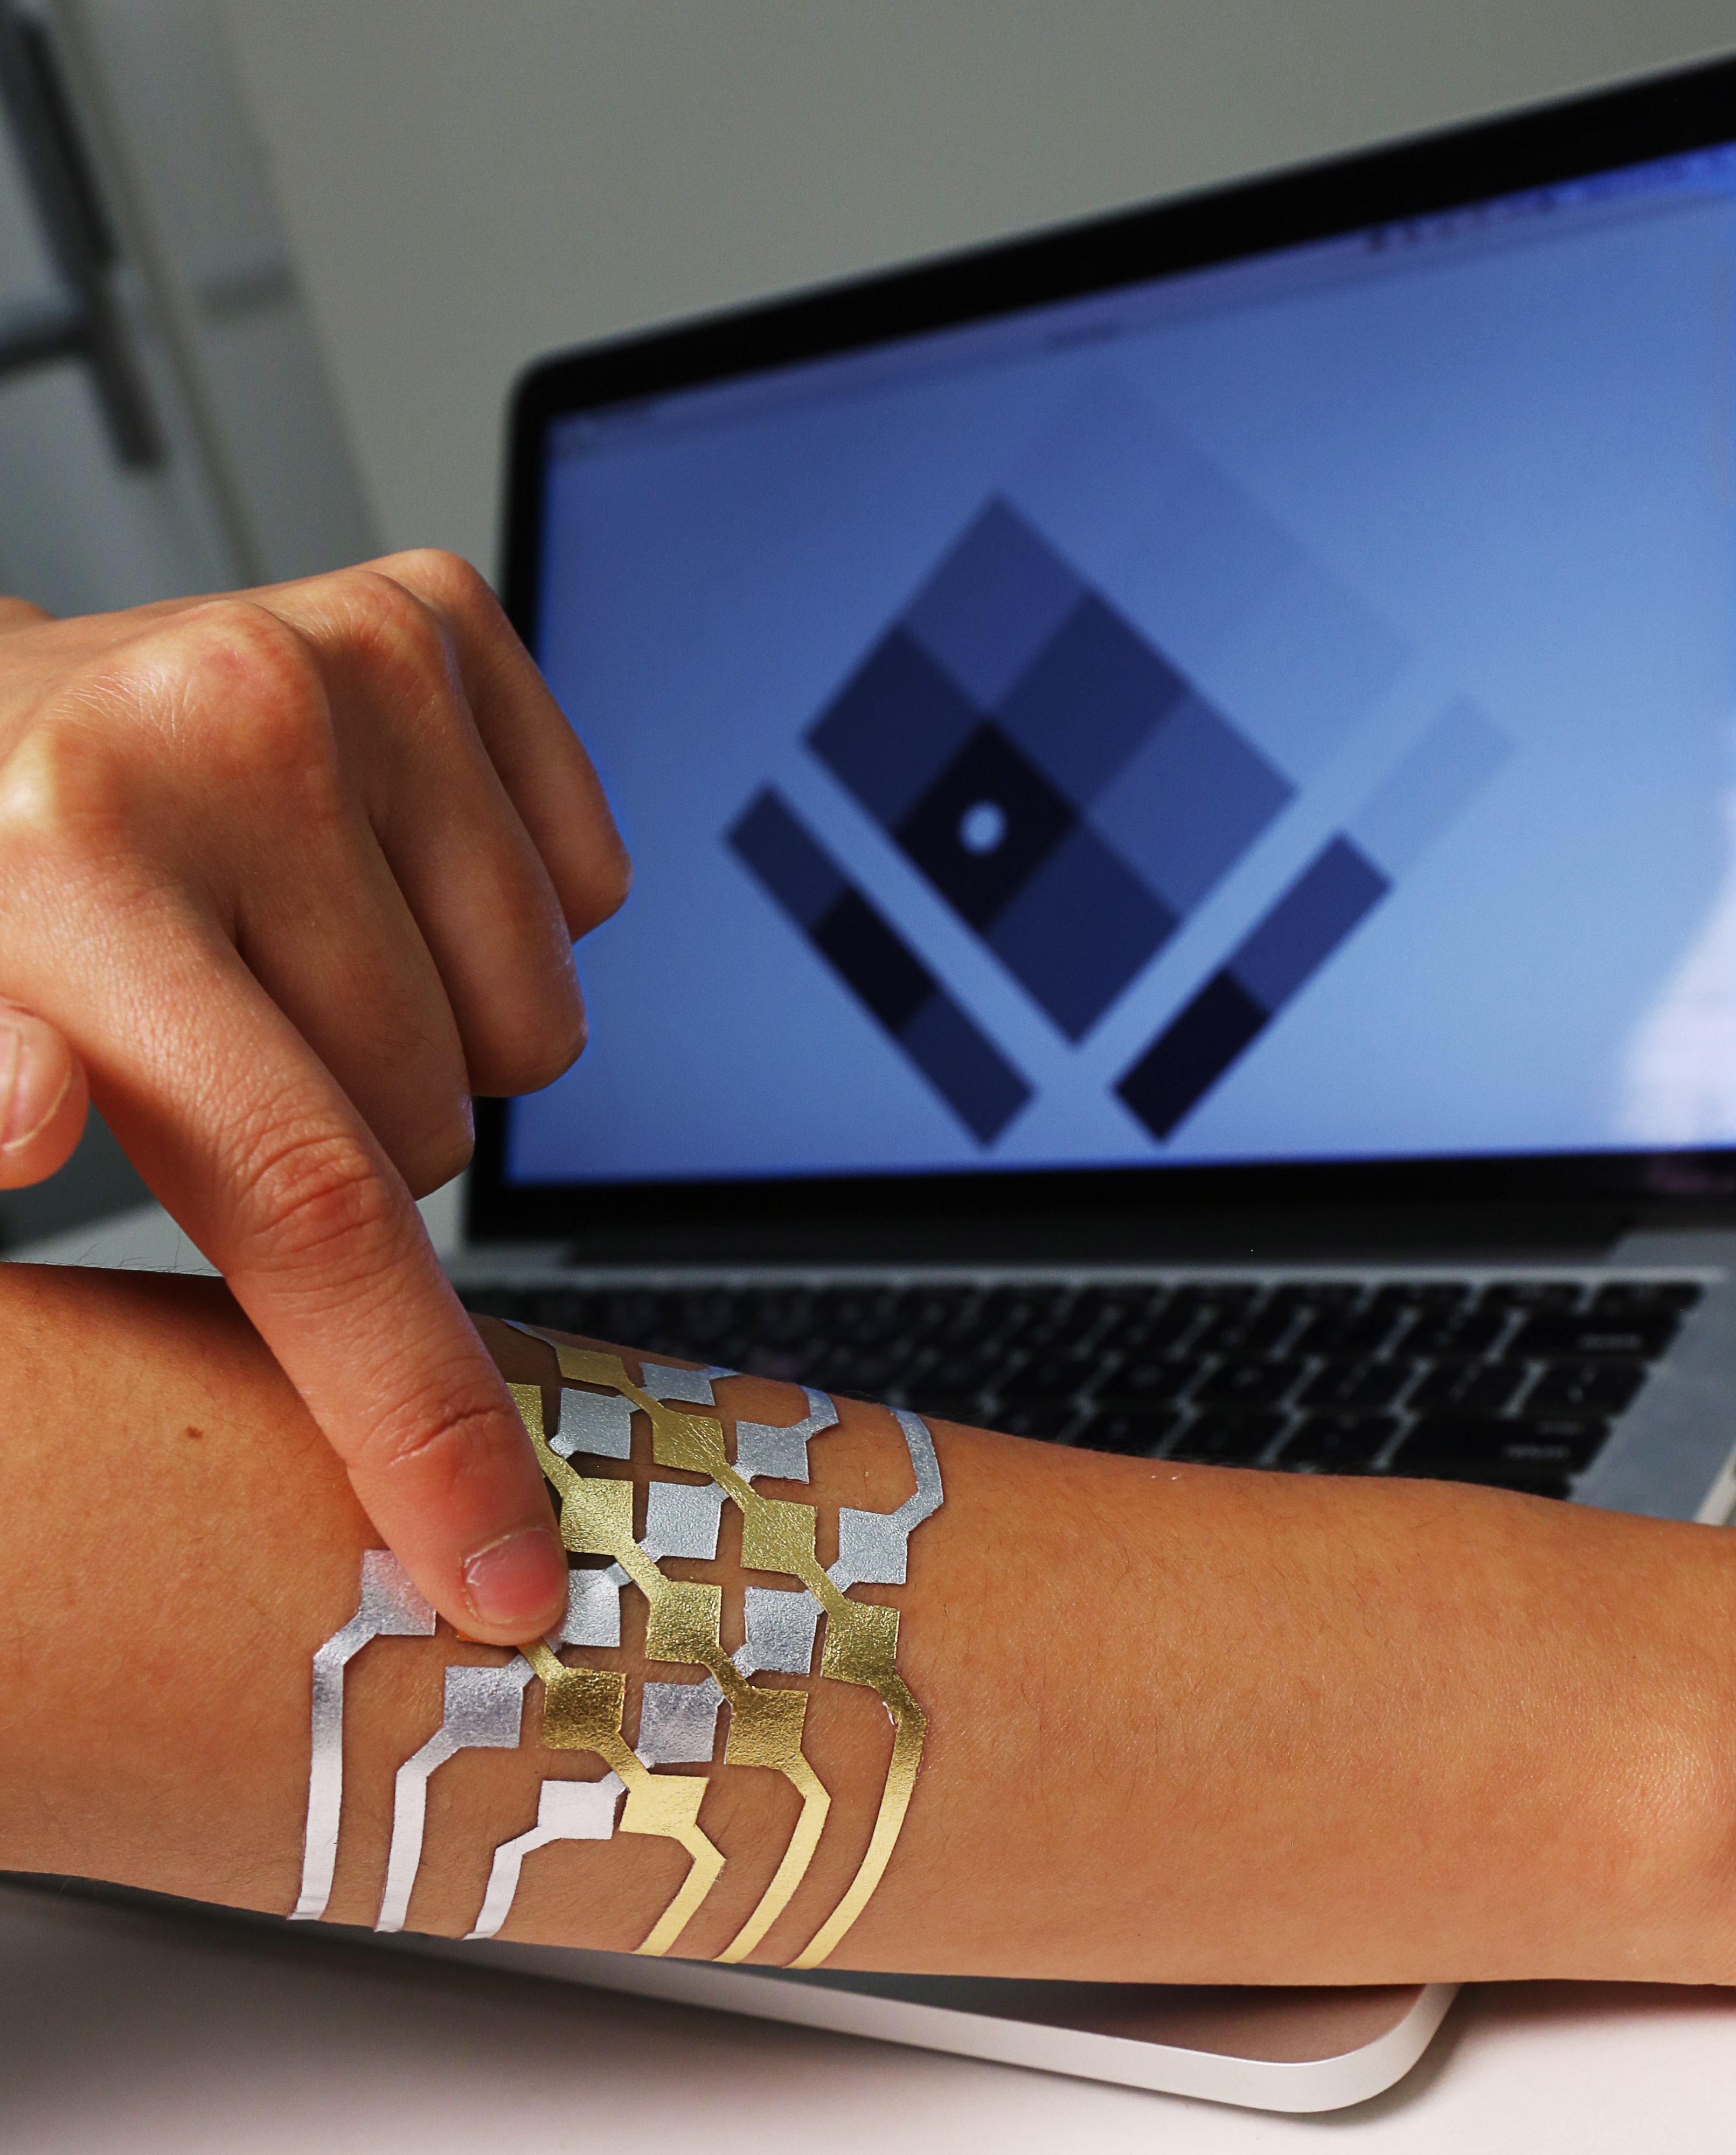 DuoSkin in action, controlling the pixels on screen.